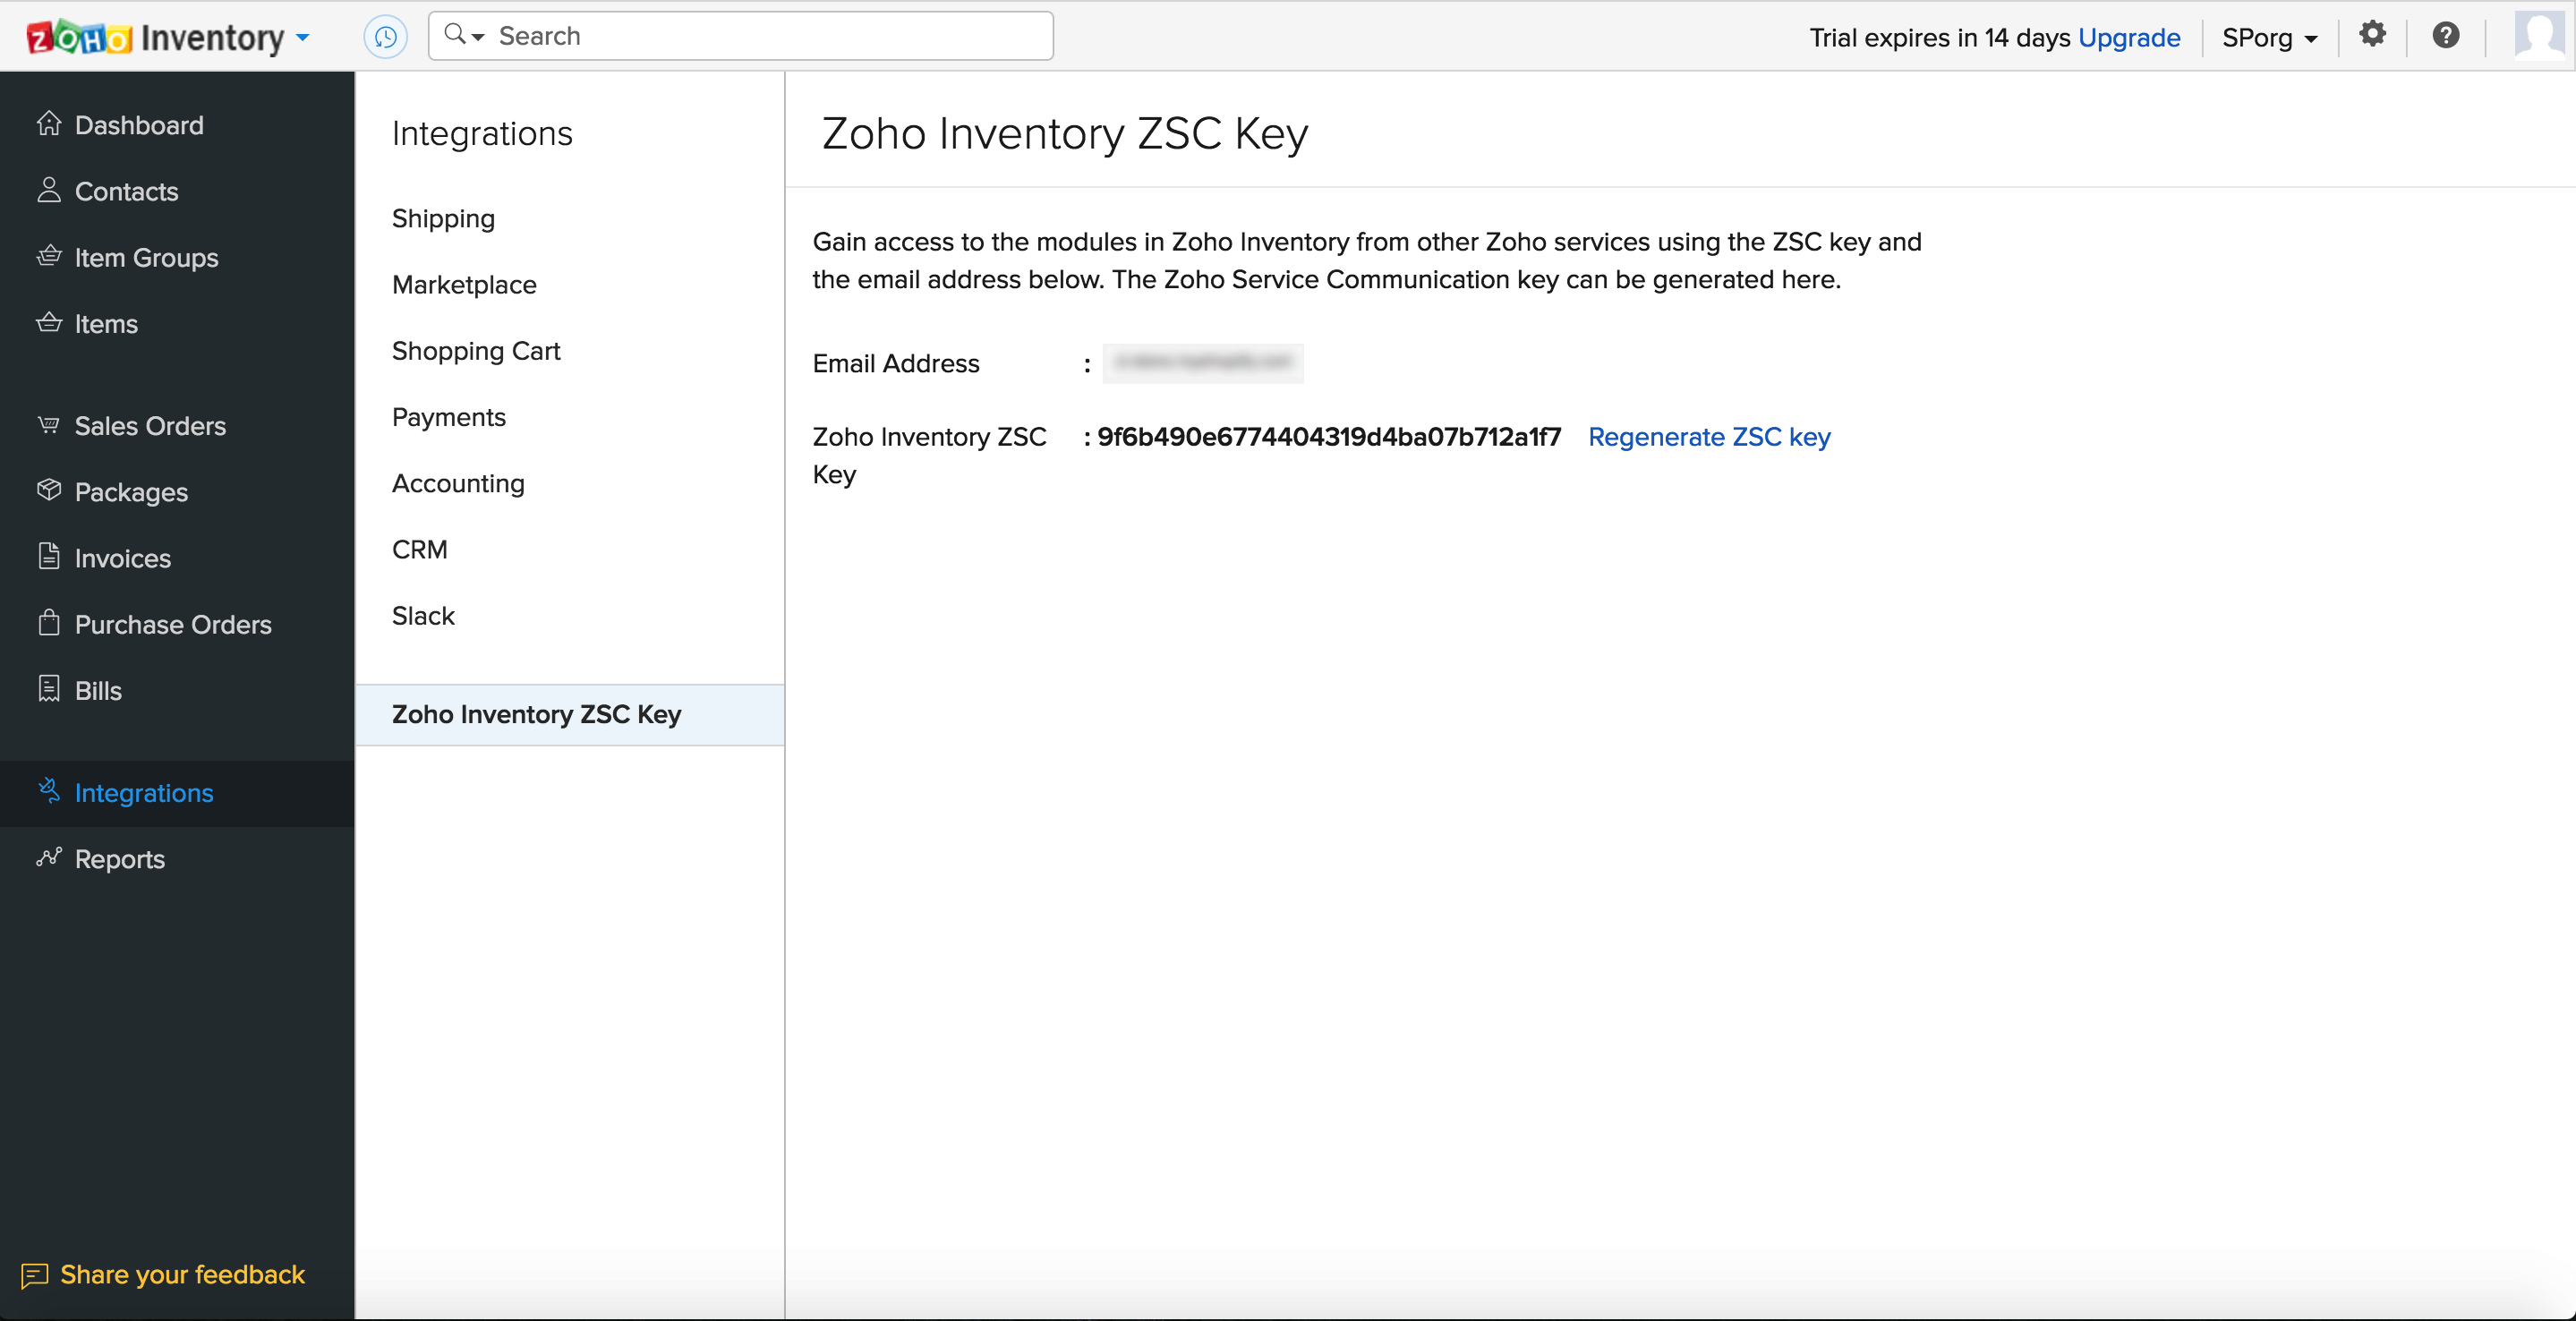 Regenerate ZSC key